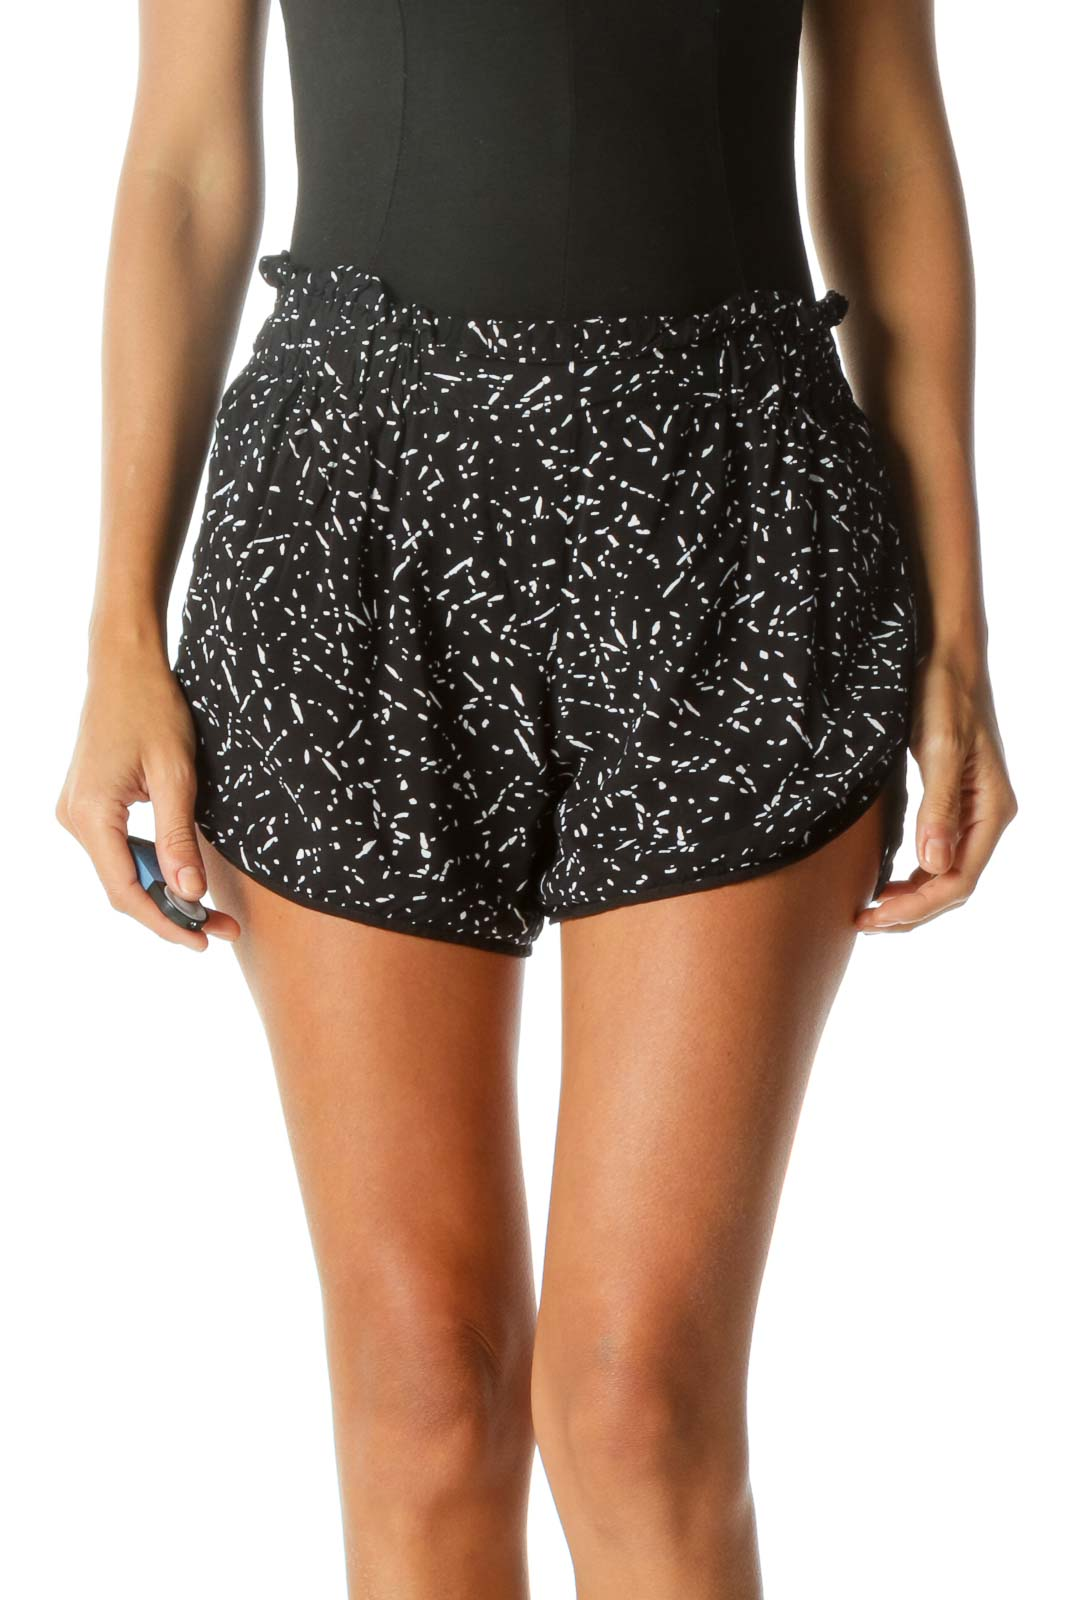 Black & White Speckled High-Rise Pocketed Mini-Shorts Front